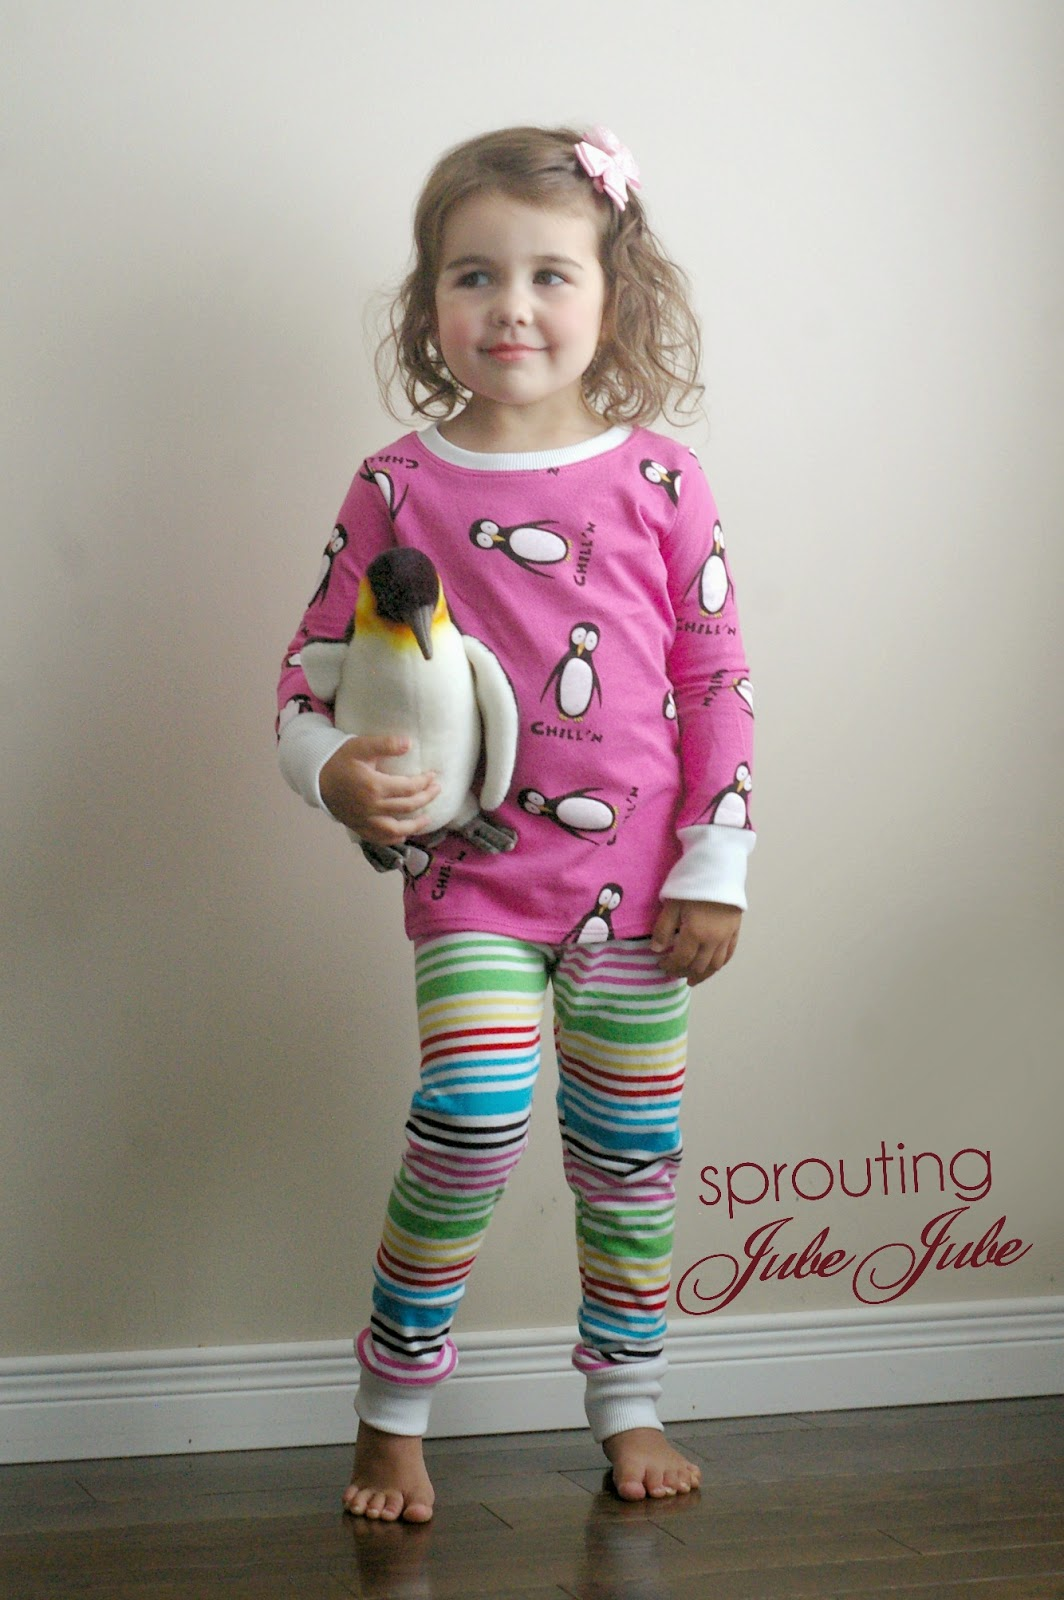 http://sproutingjj.blogspot.ca/2014/09/all-you-need-jammies-heidi-and-finn.html